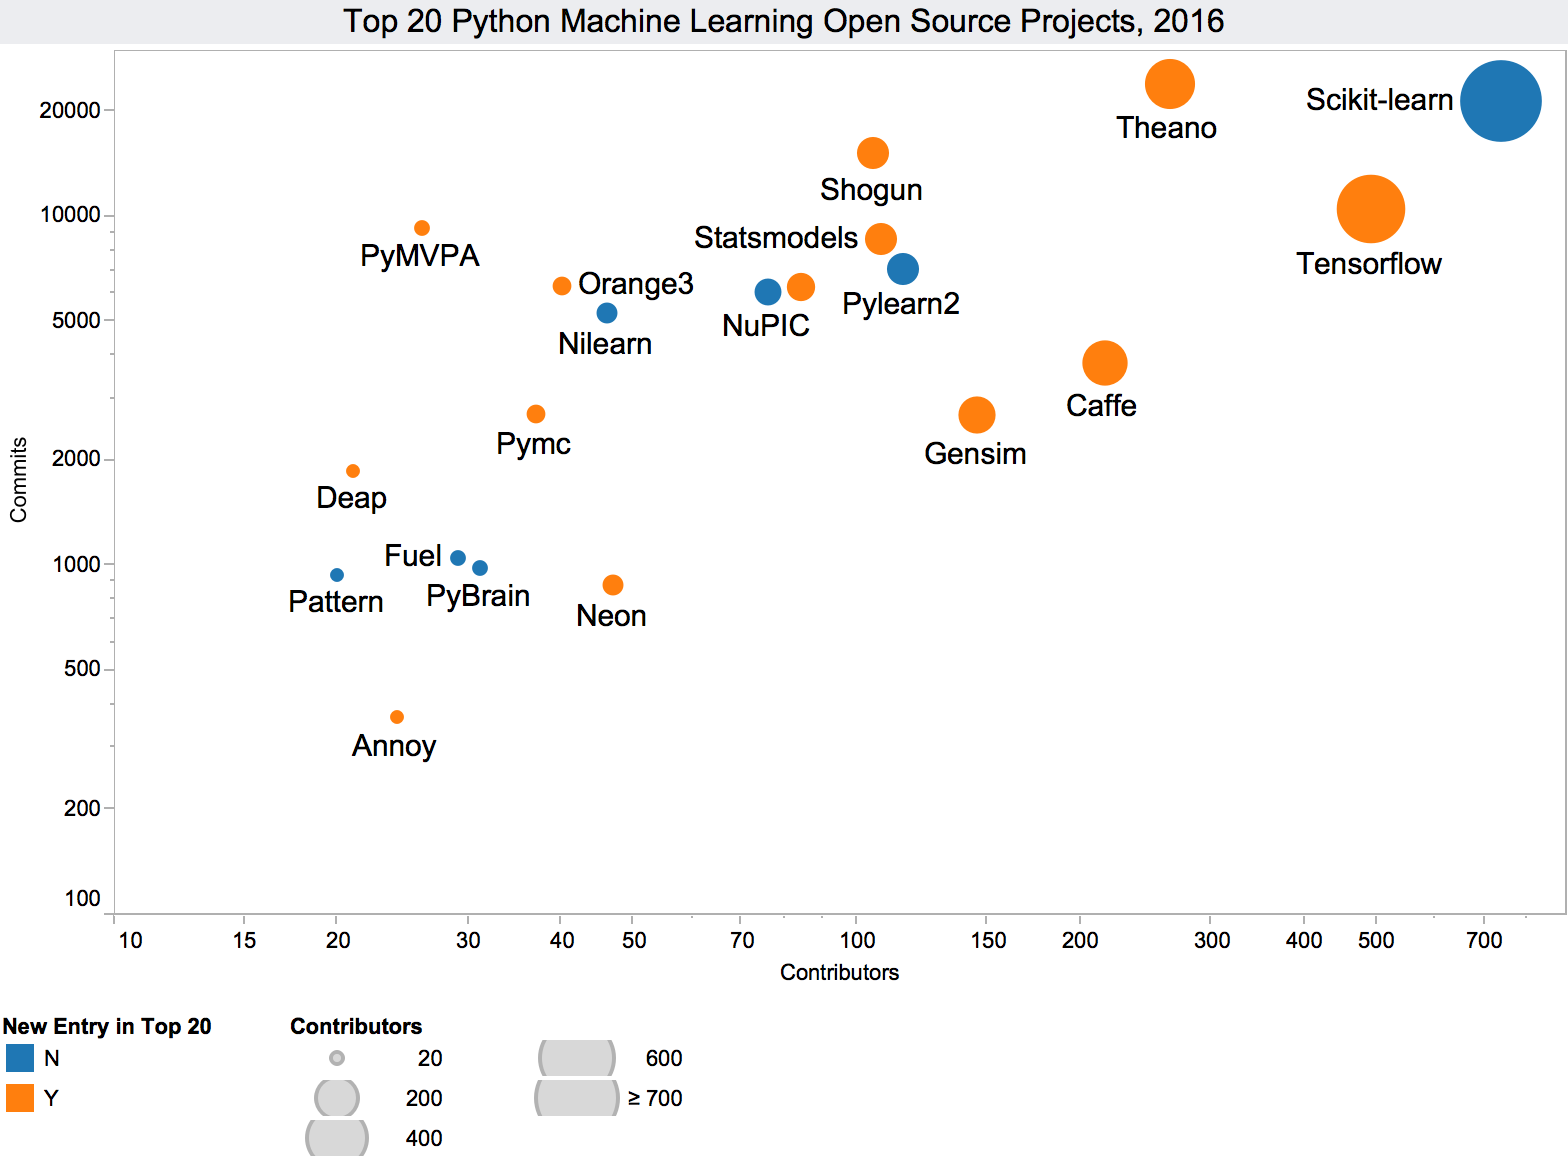 the5: Top 20 #Python Machine Learning Open Source Projects, updated